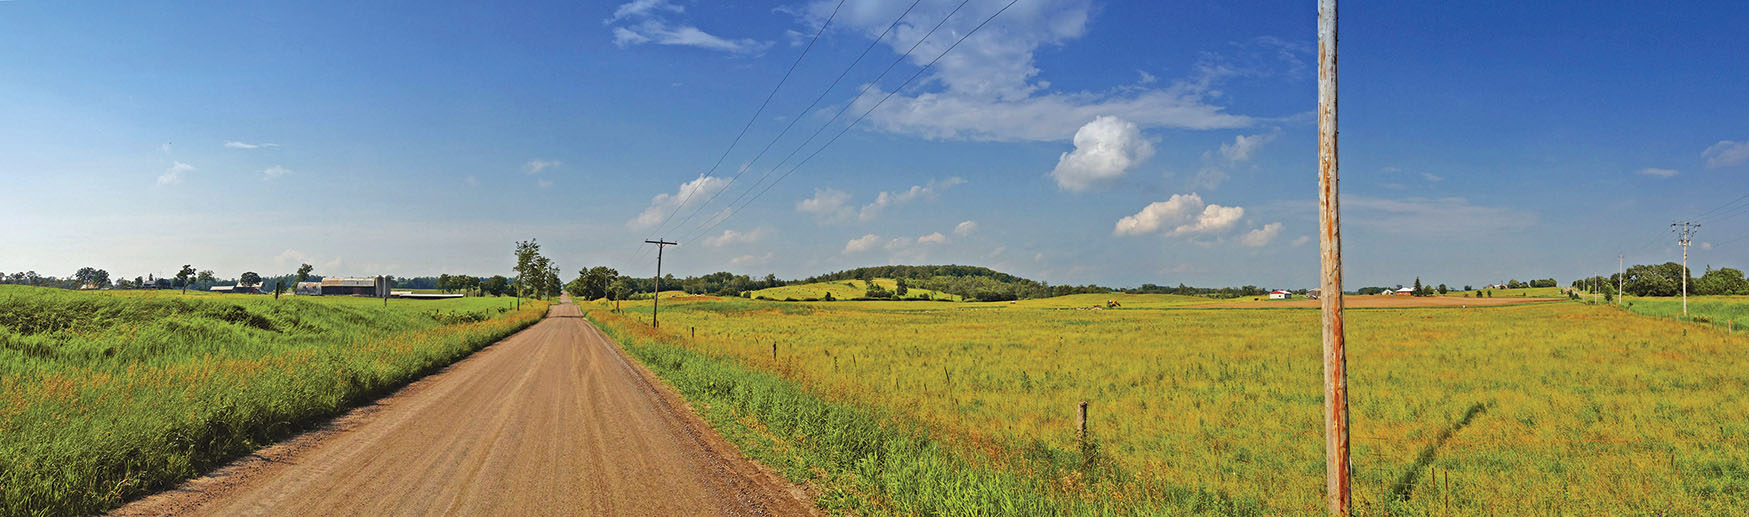 Vast vistas of farmland make the drive in to town an enjoyable experience. Photo by Teddy Ryan